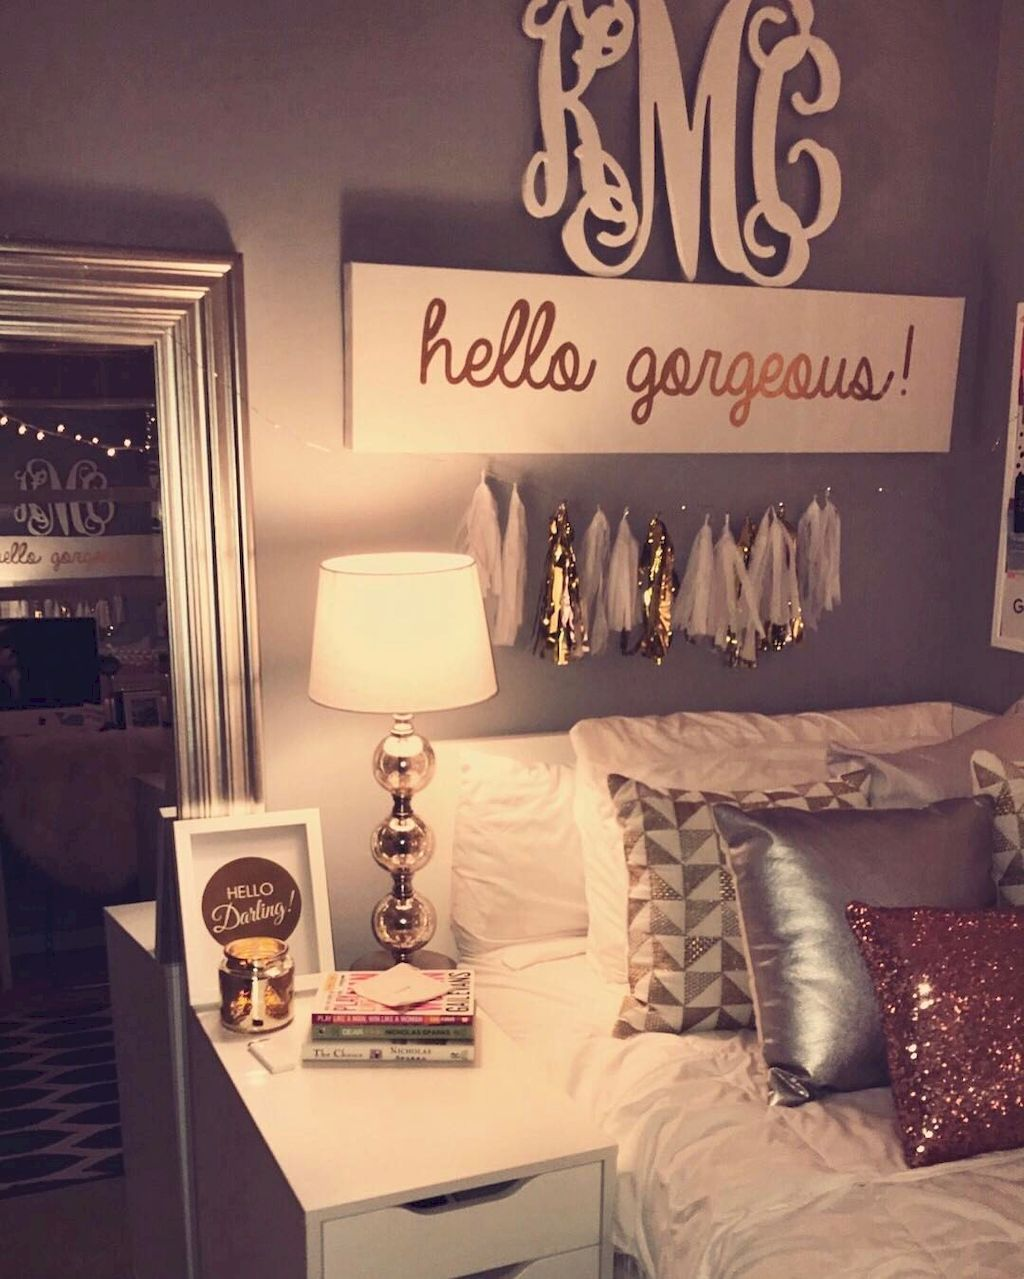 60 Stunning and Cute Dorm Room Decorating Ideas | Room decorating ...